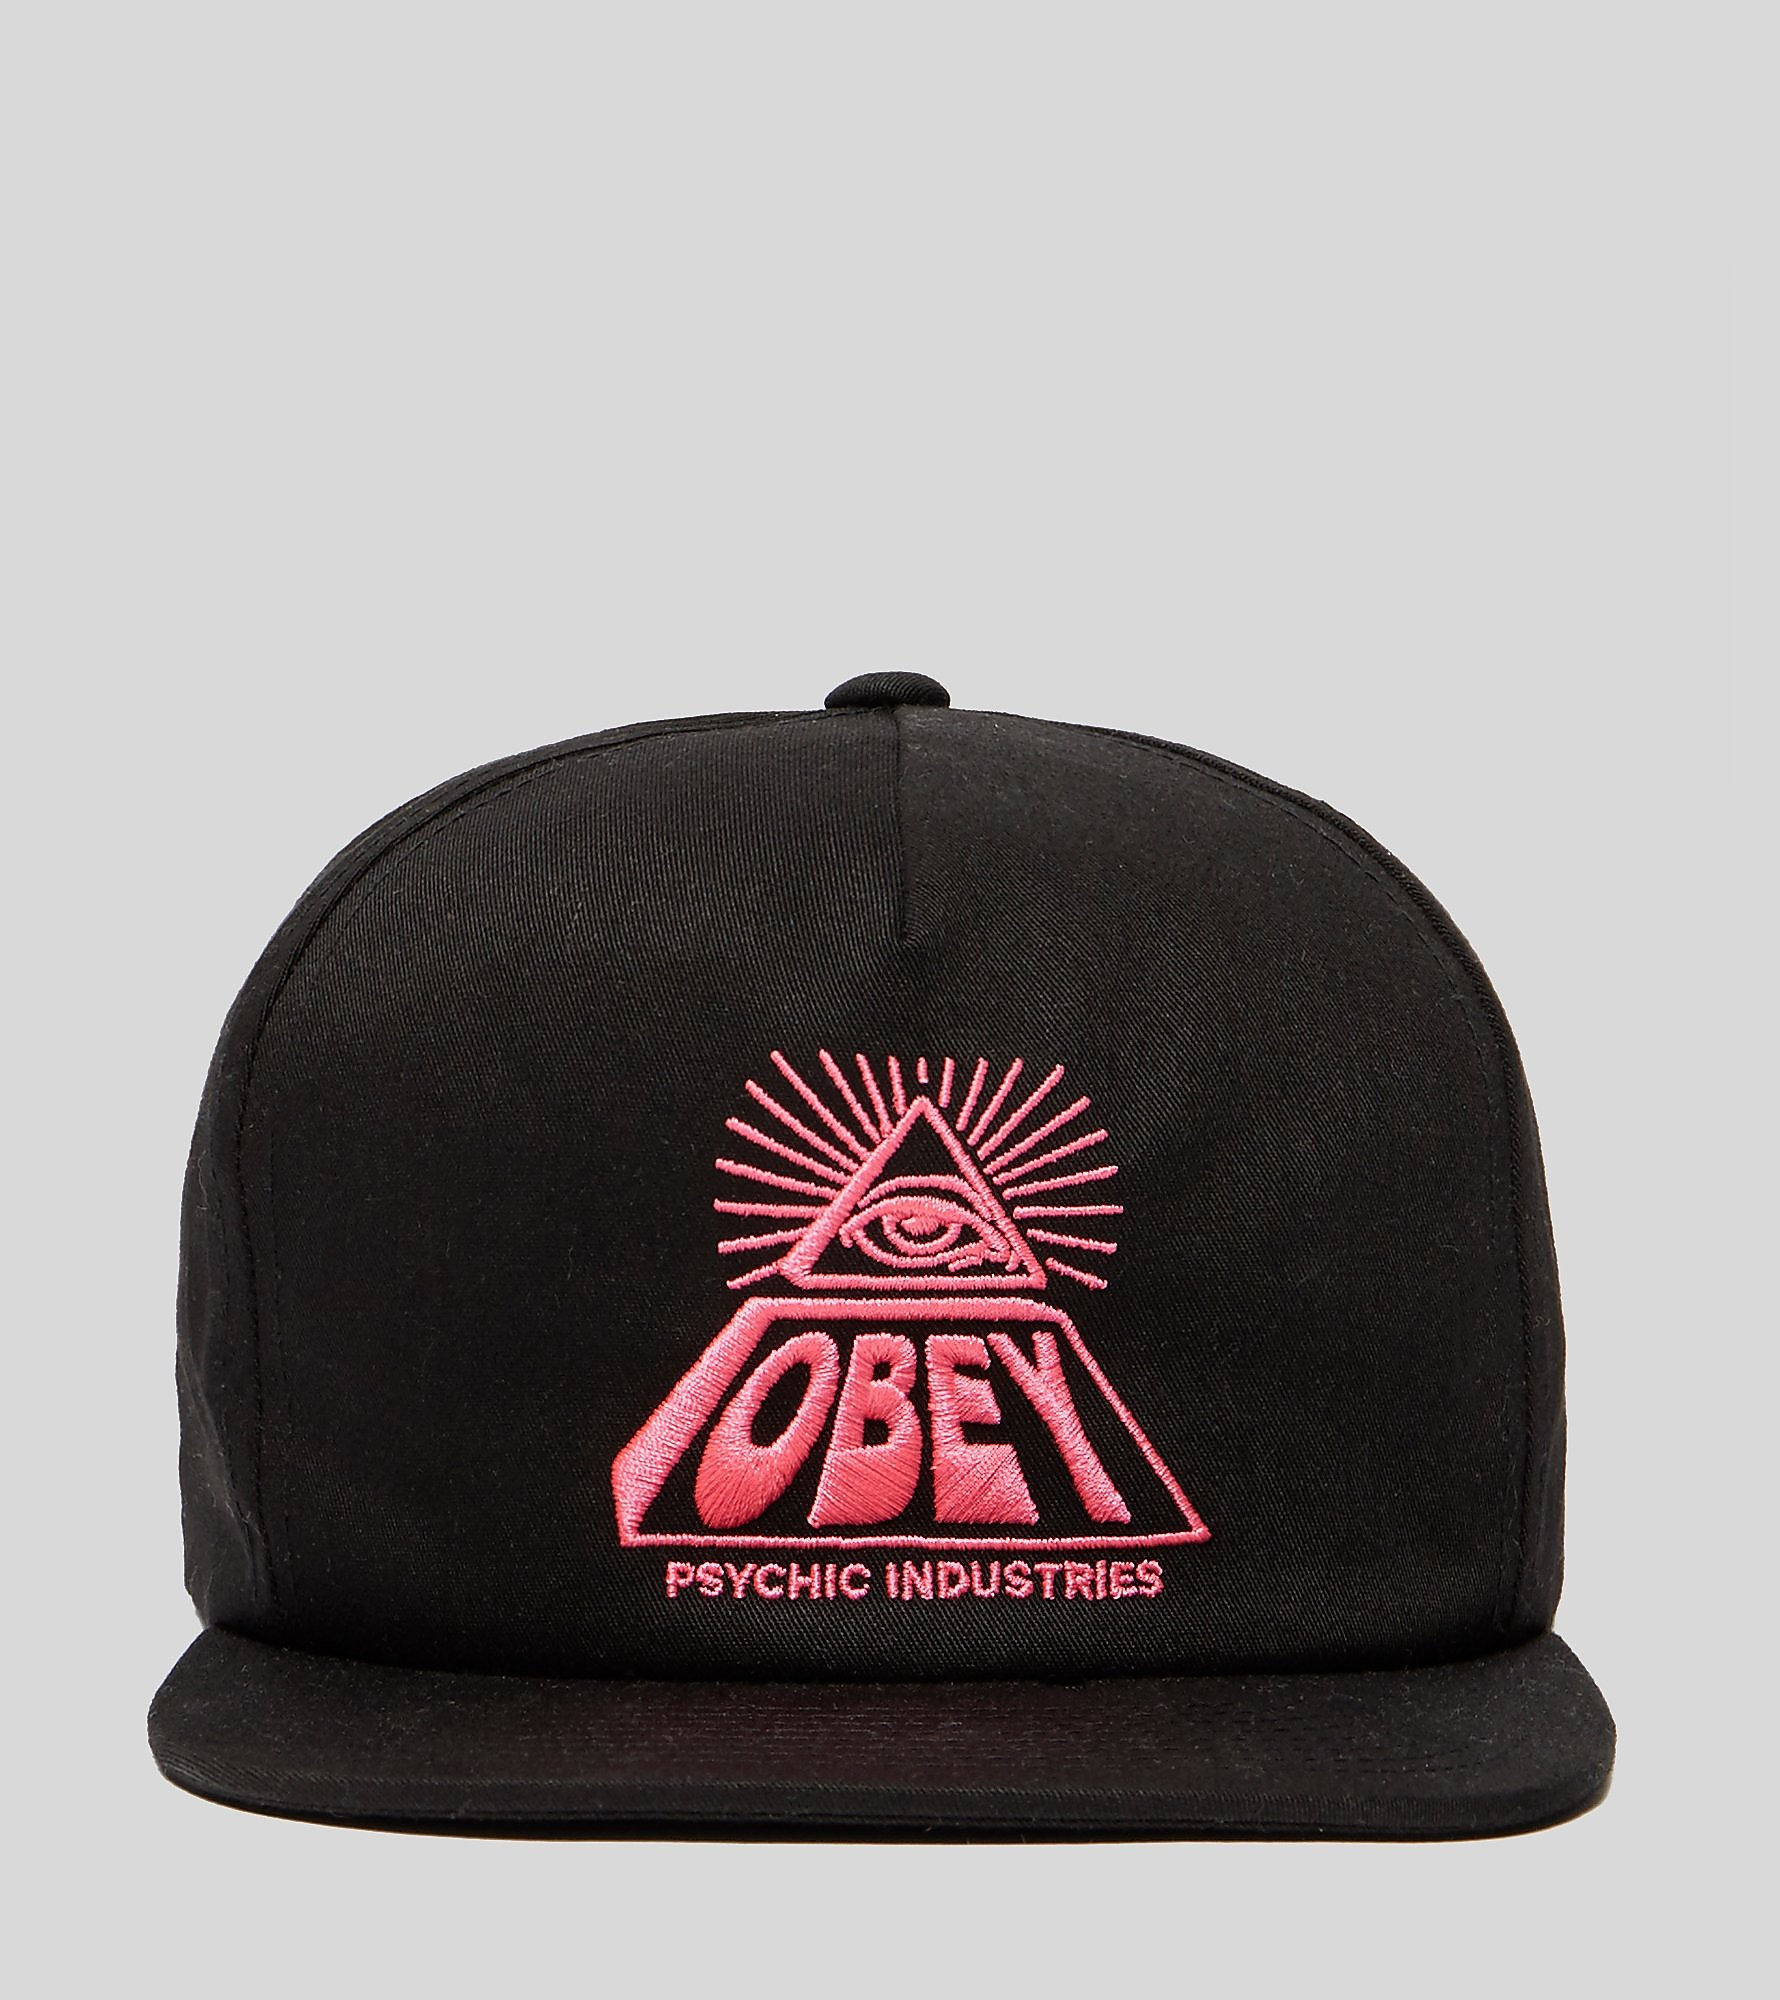 Obey Psychic Industries Snapback Cap